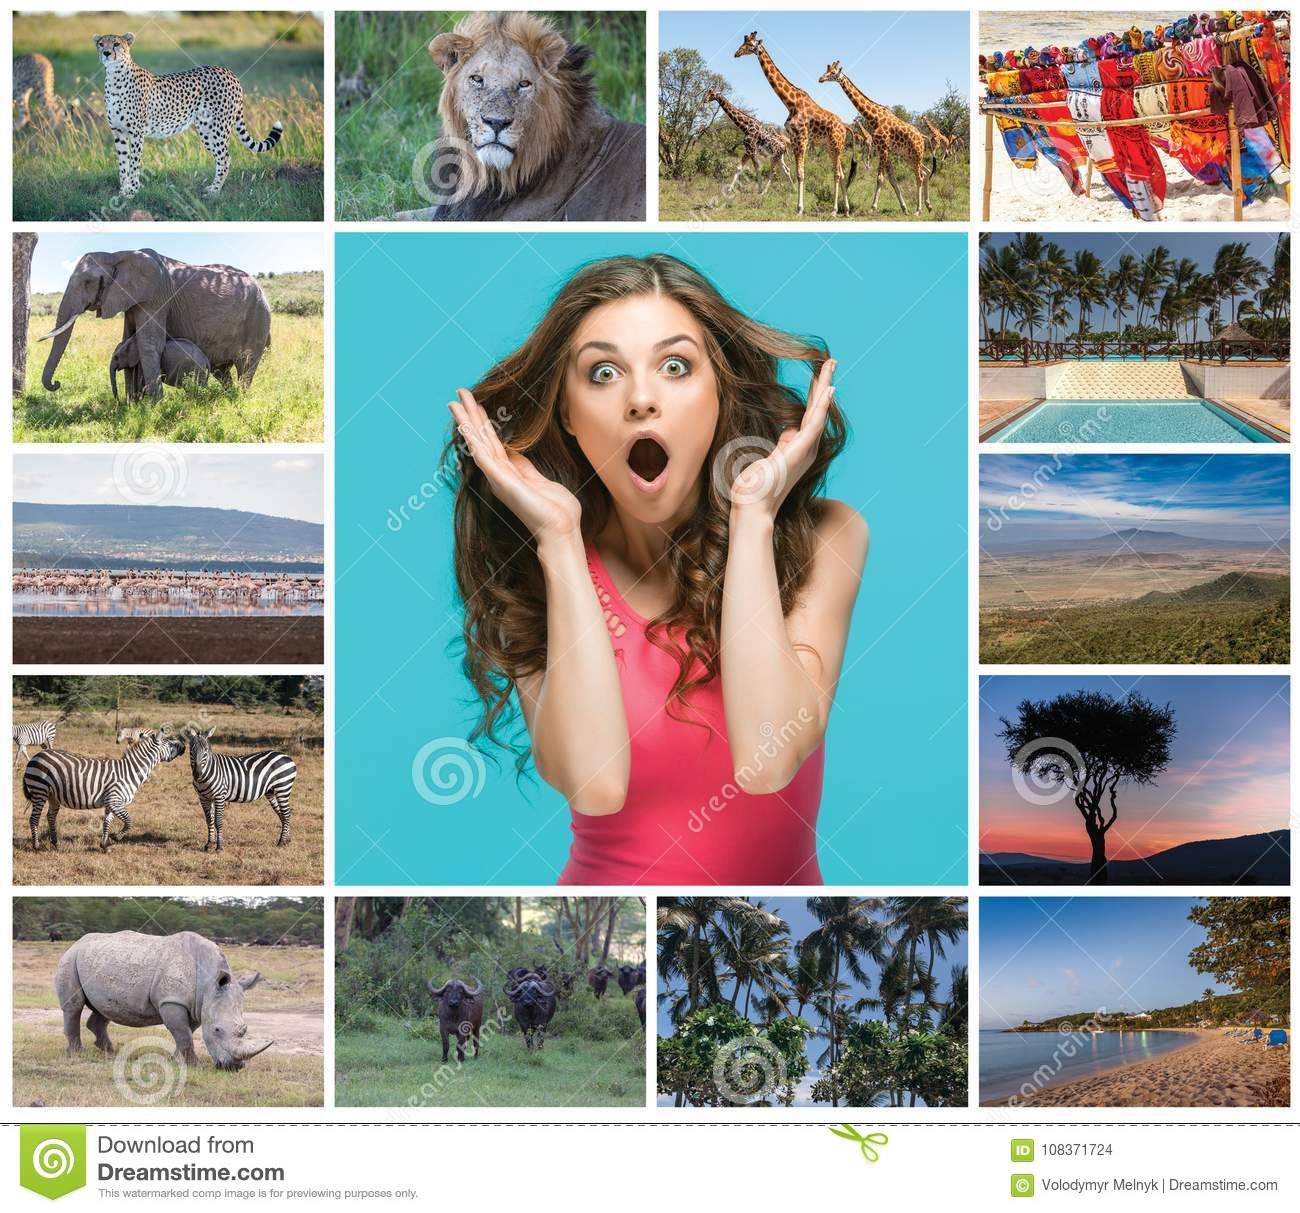 Collage from images of wildlife and beautiful views of the Kenya